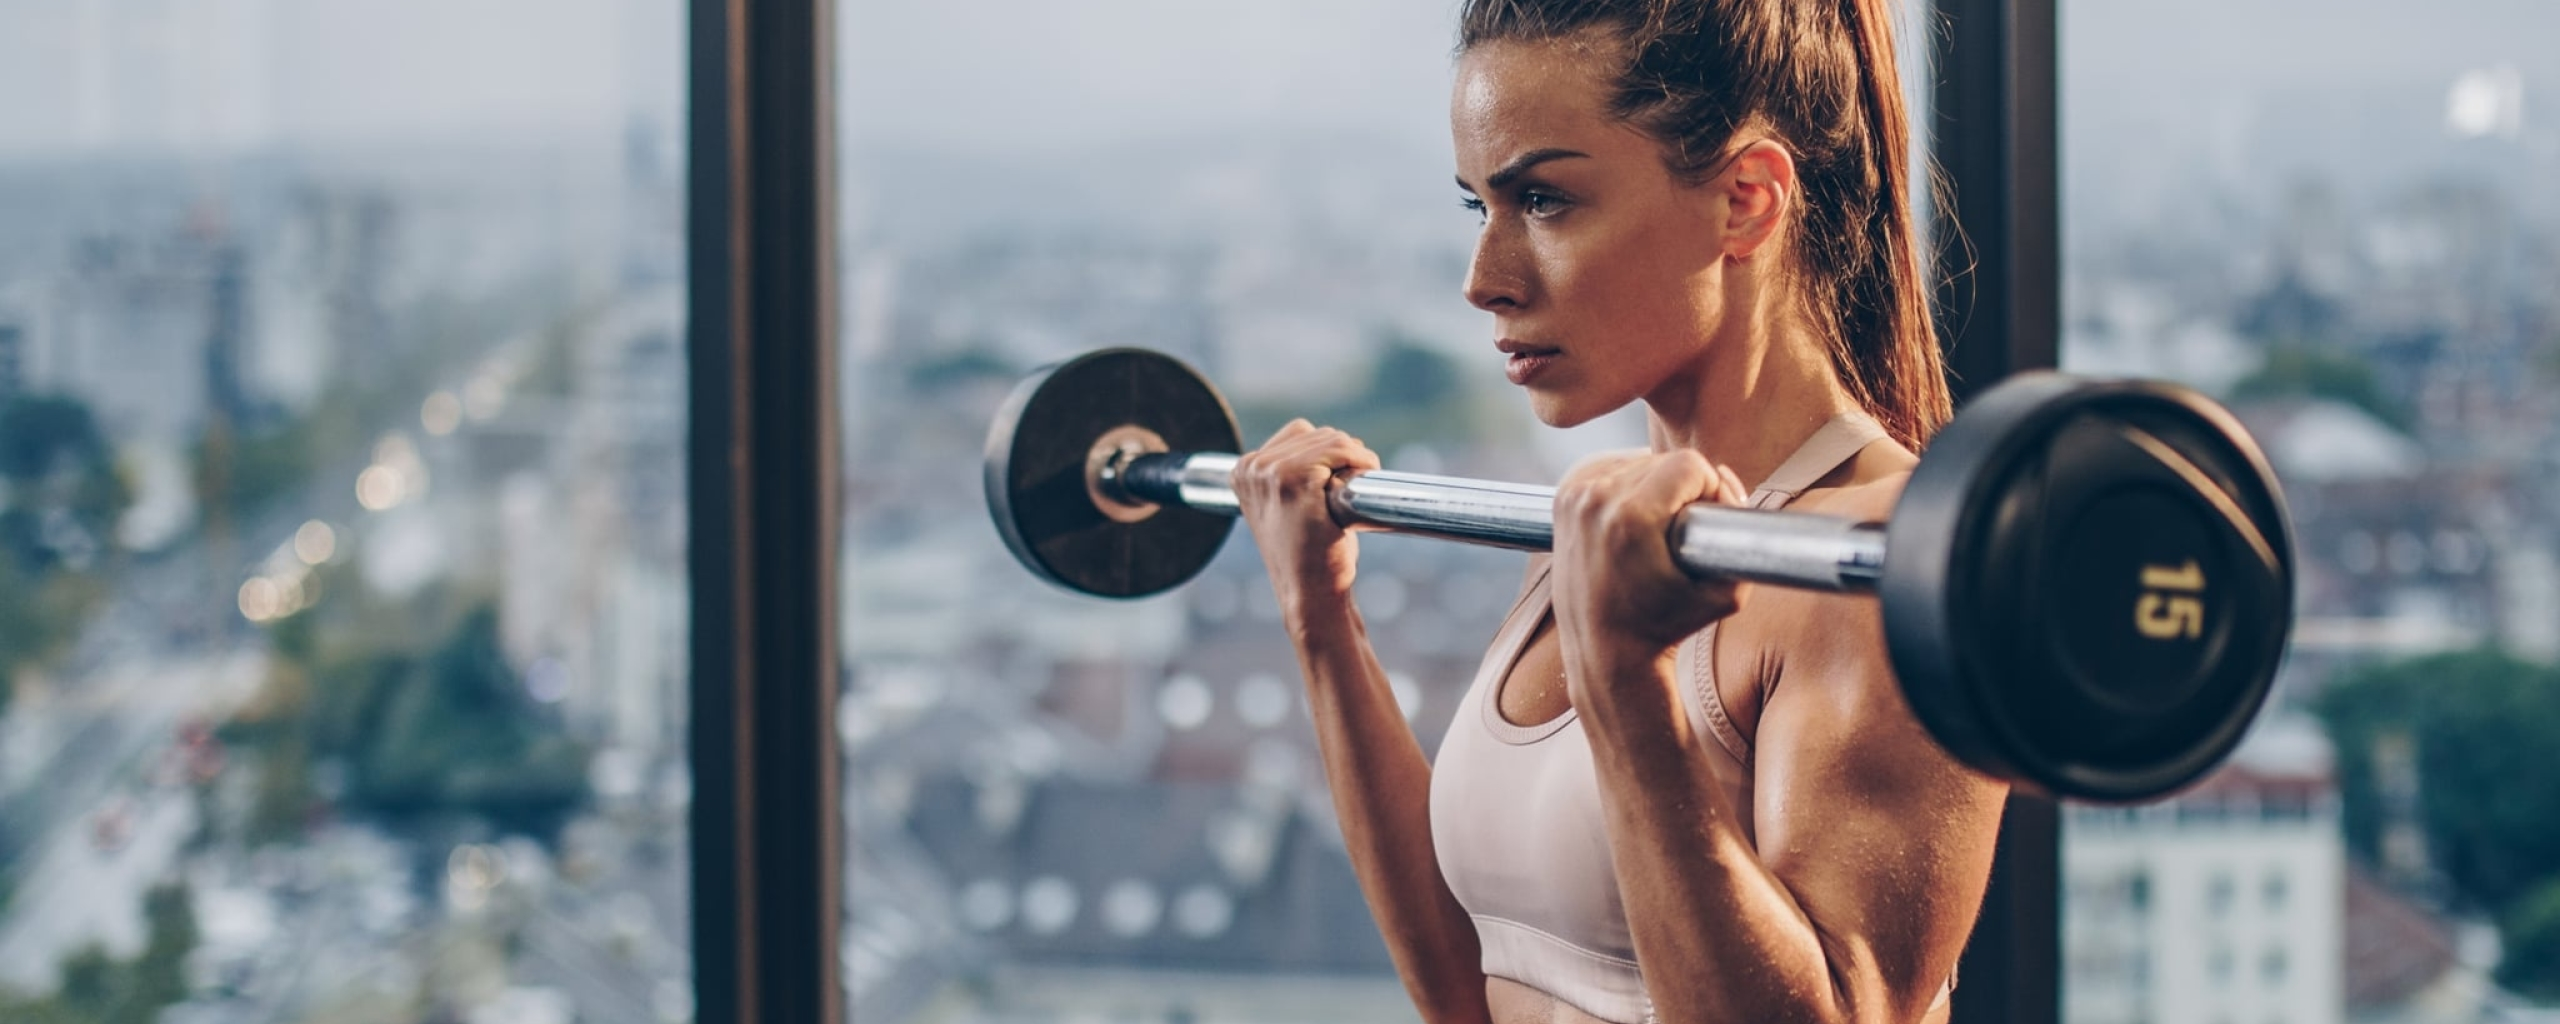 Girl Lifting Bar Wallpaper in 2560x1024 Resolution